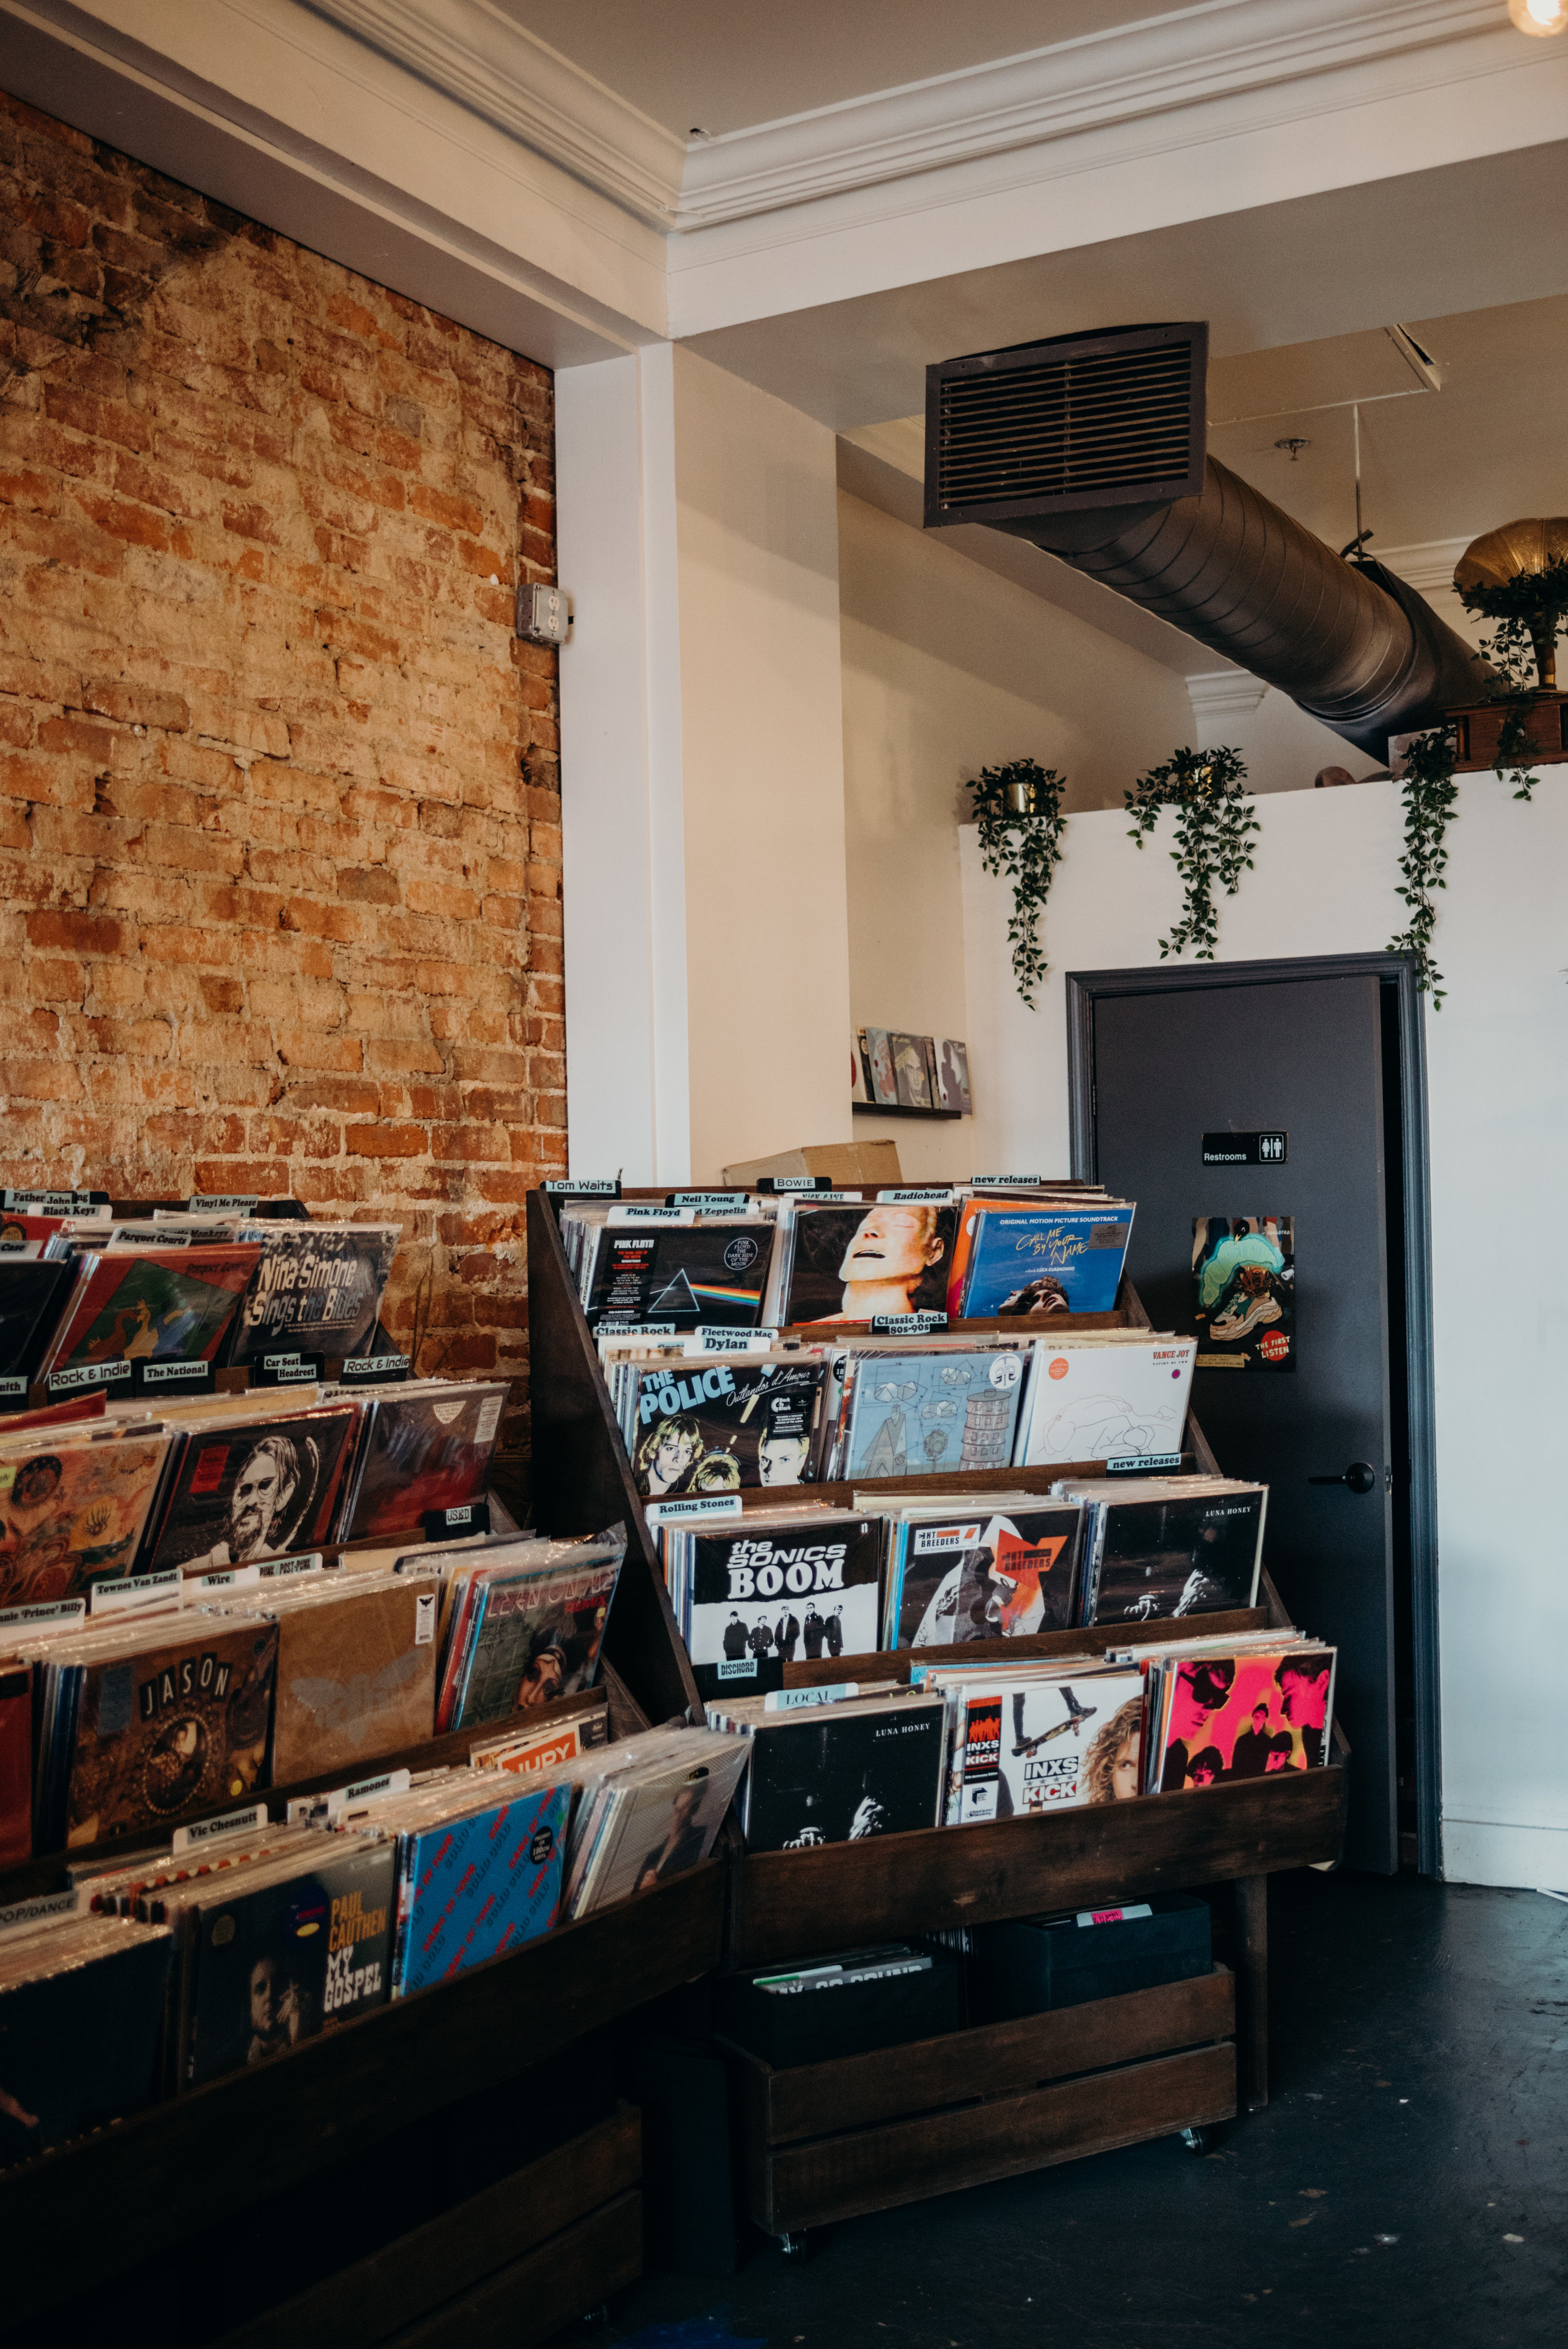 brick wall with a shelf of records at a record store in Washington, D.C.